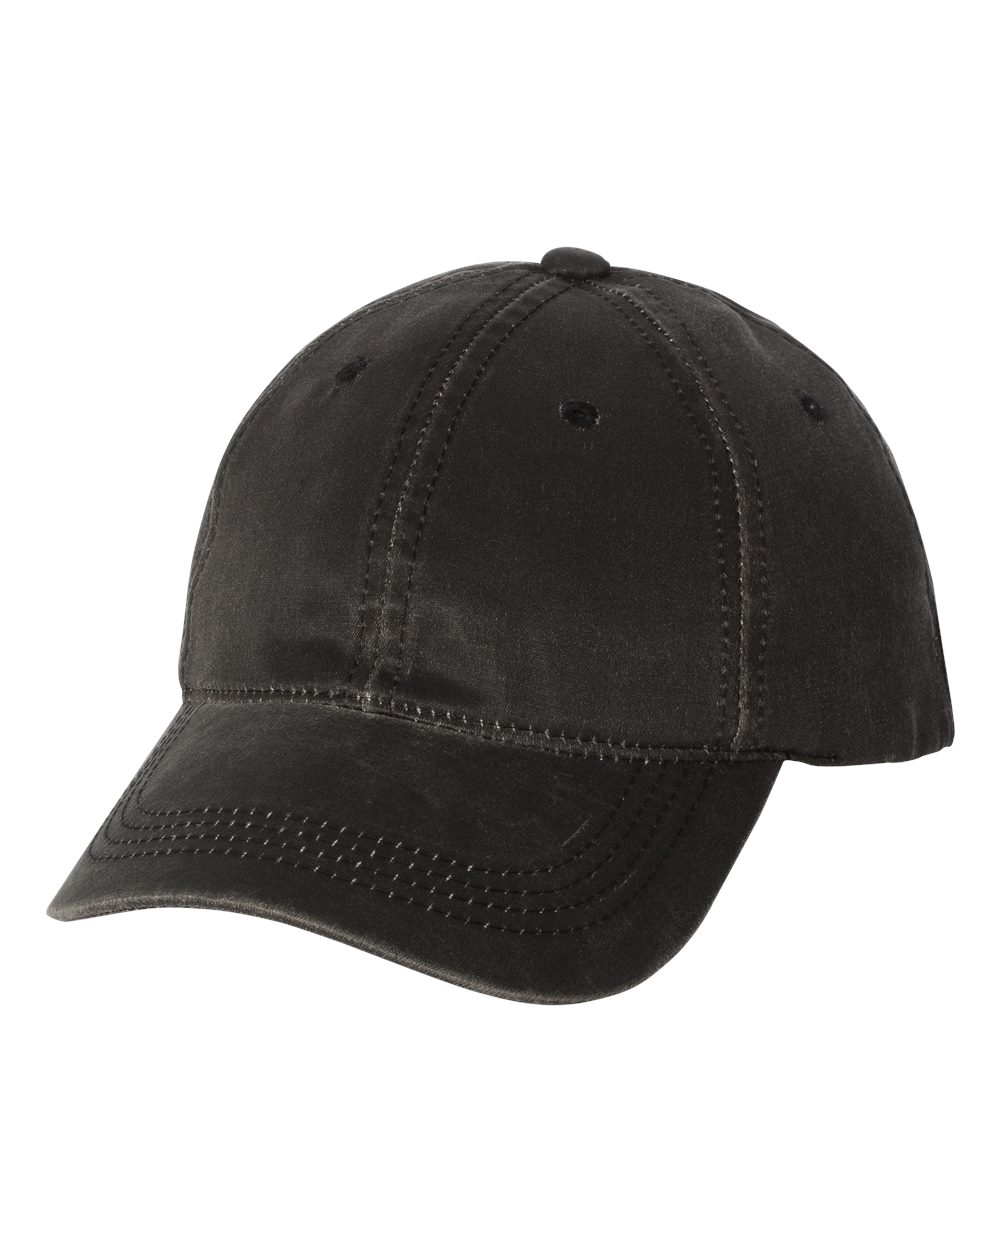 Outdoor Cap HPD605